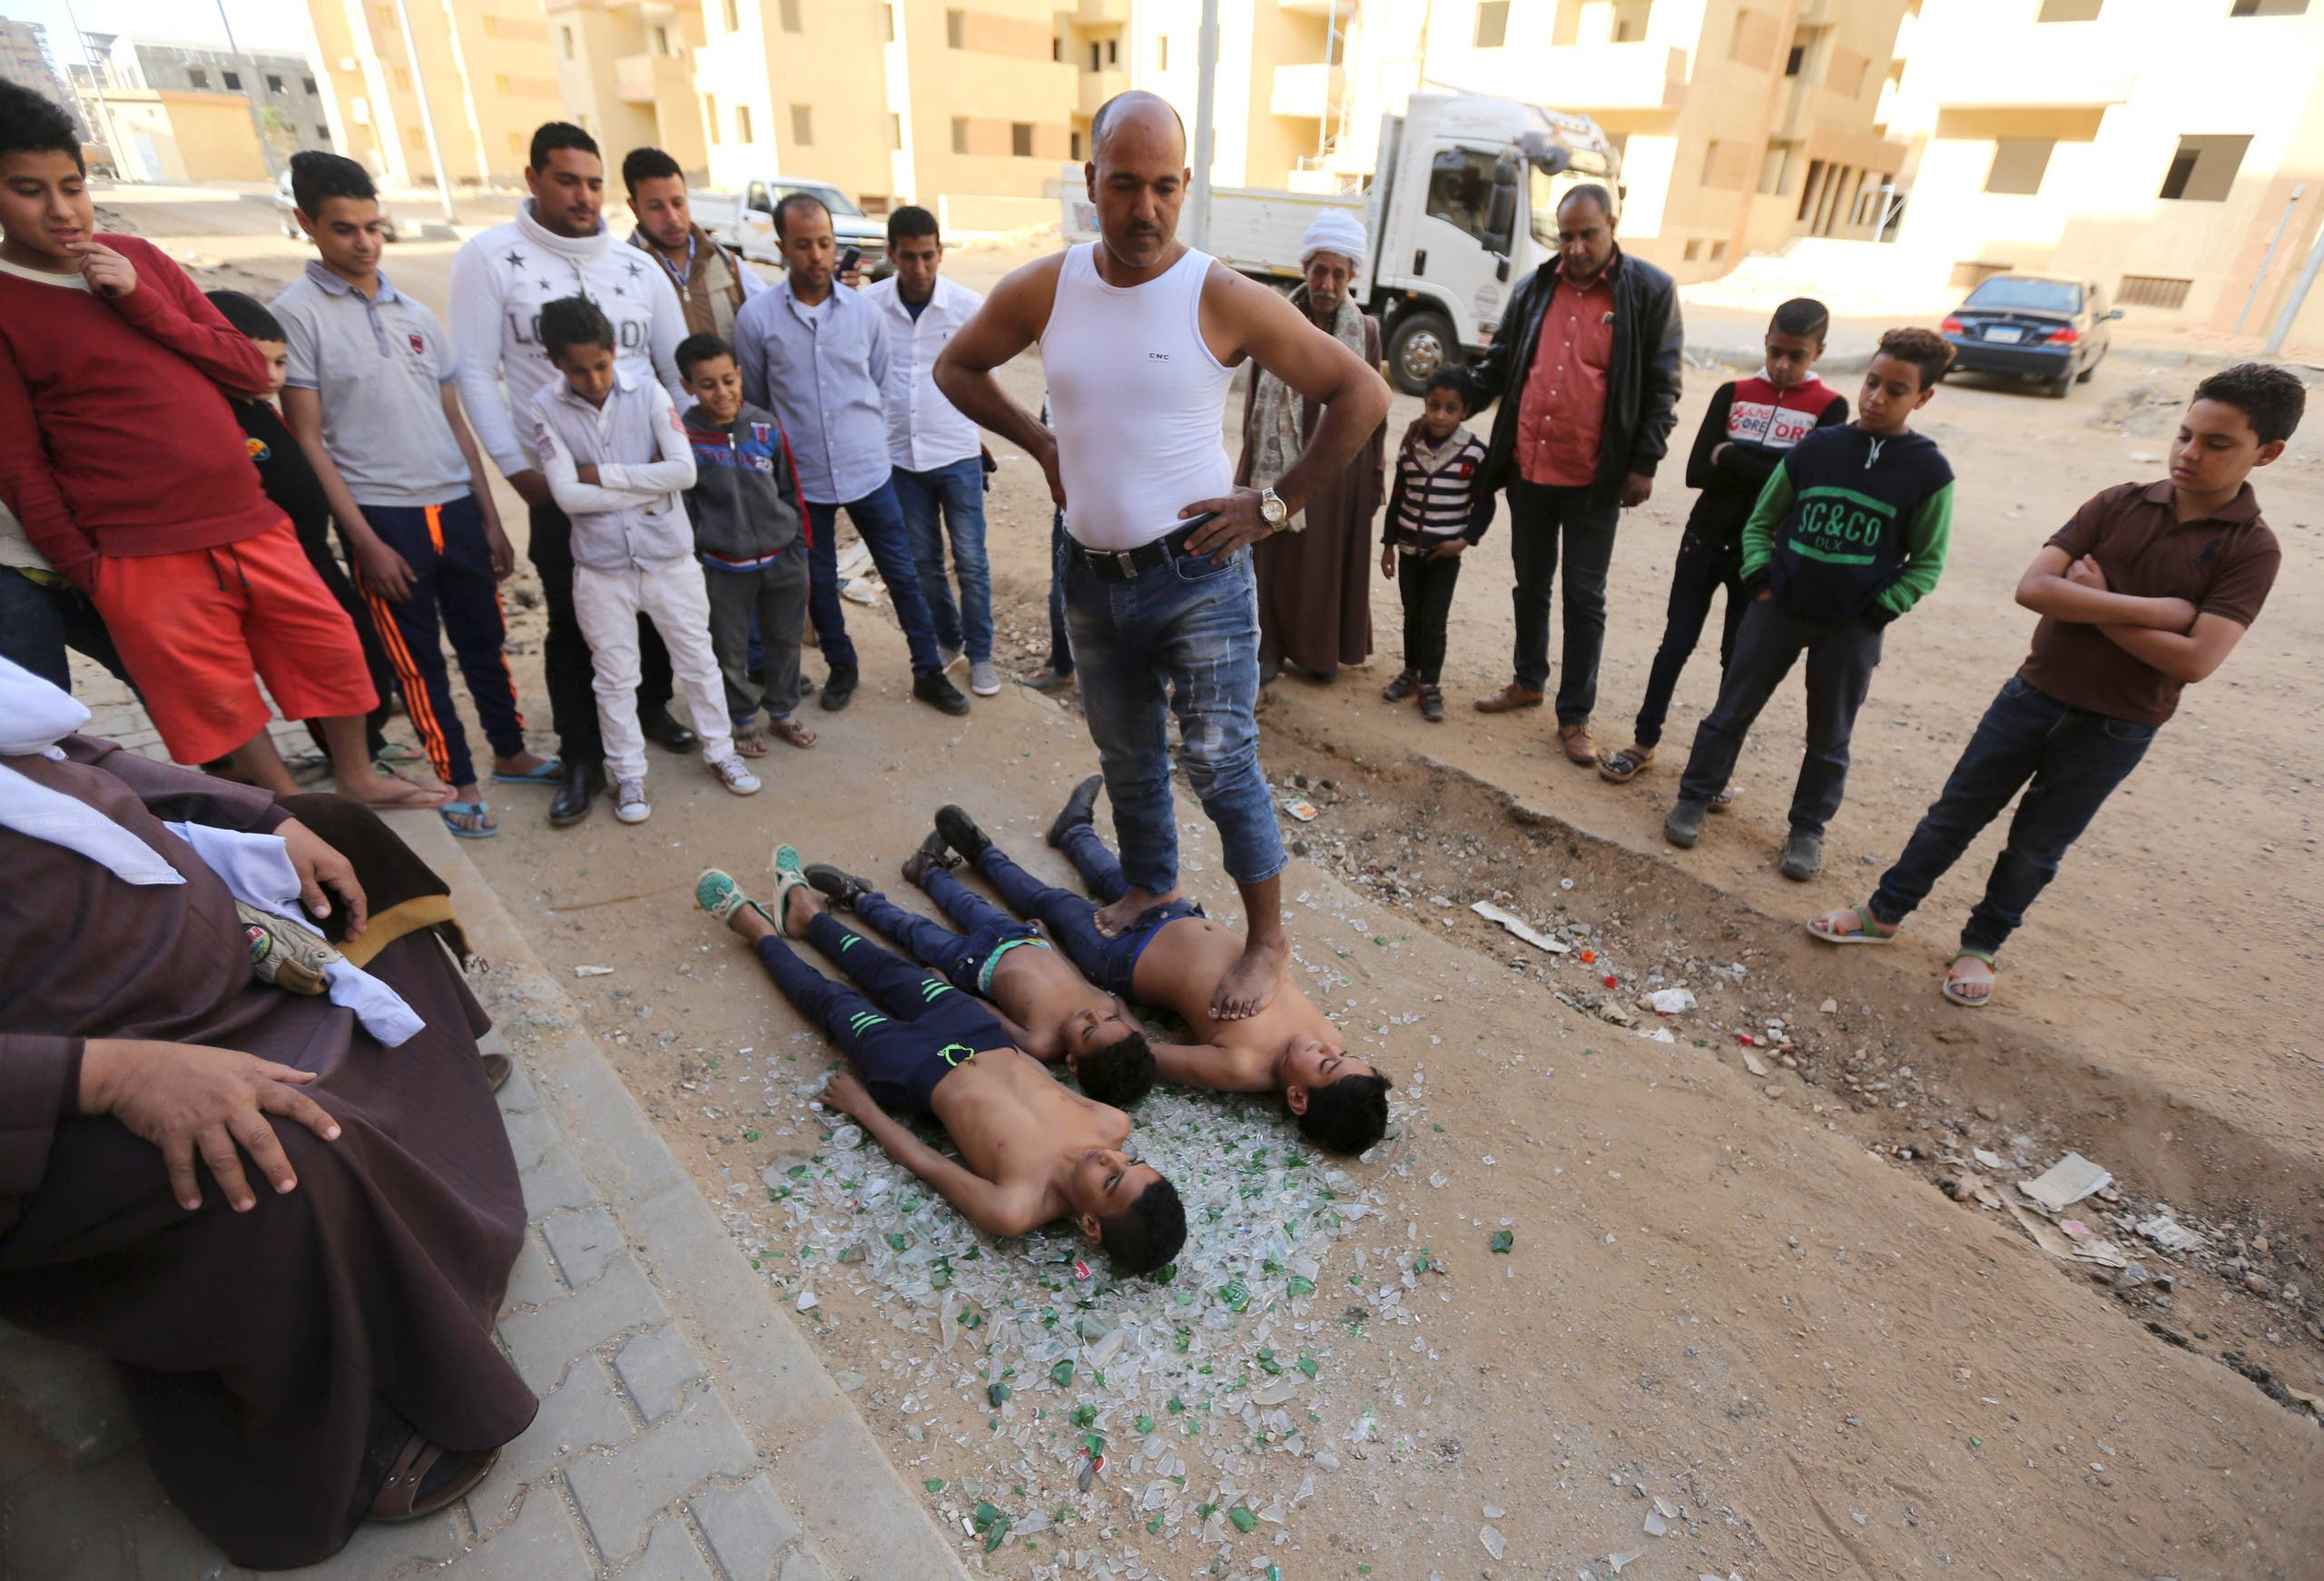 Egyptian strongman Karim Hussein, 38, walks over his sons as they sleep on broken glass in Cairo, Egypt, March 18, 2016. (Reuters)